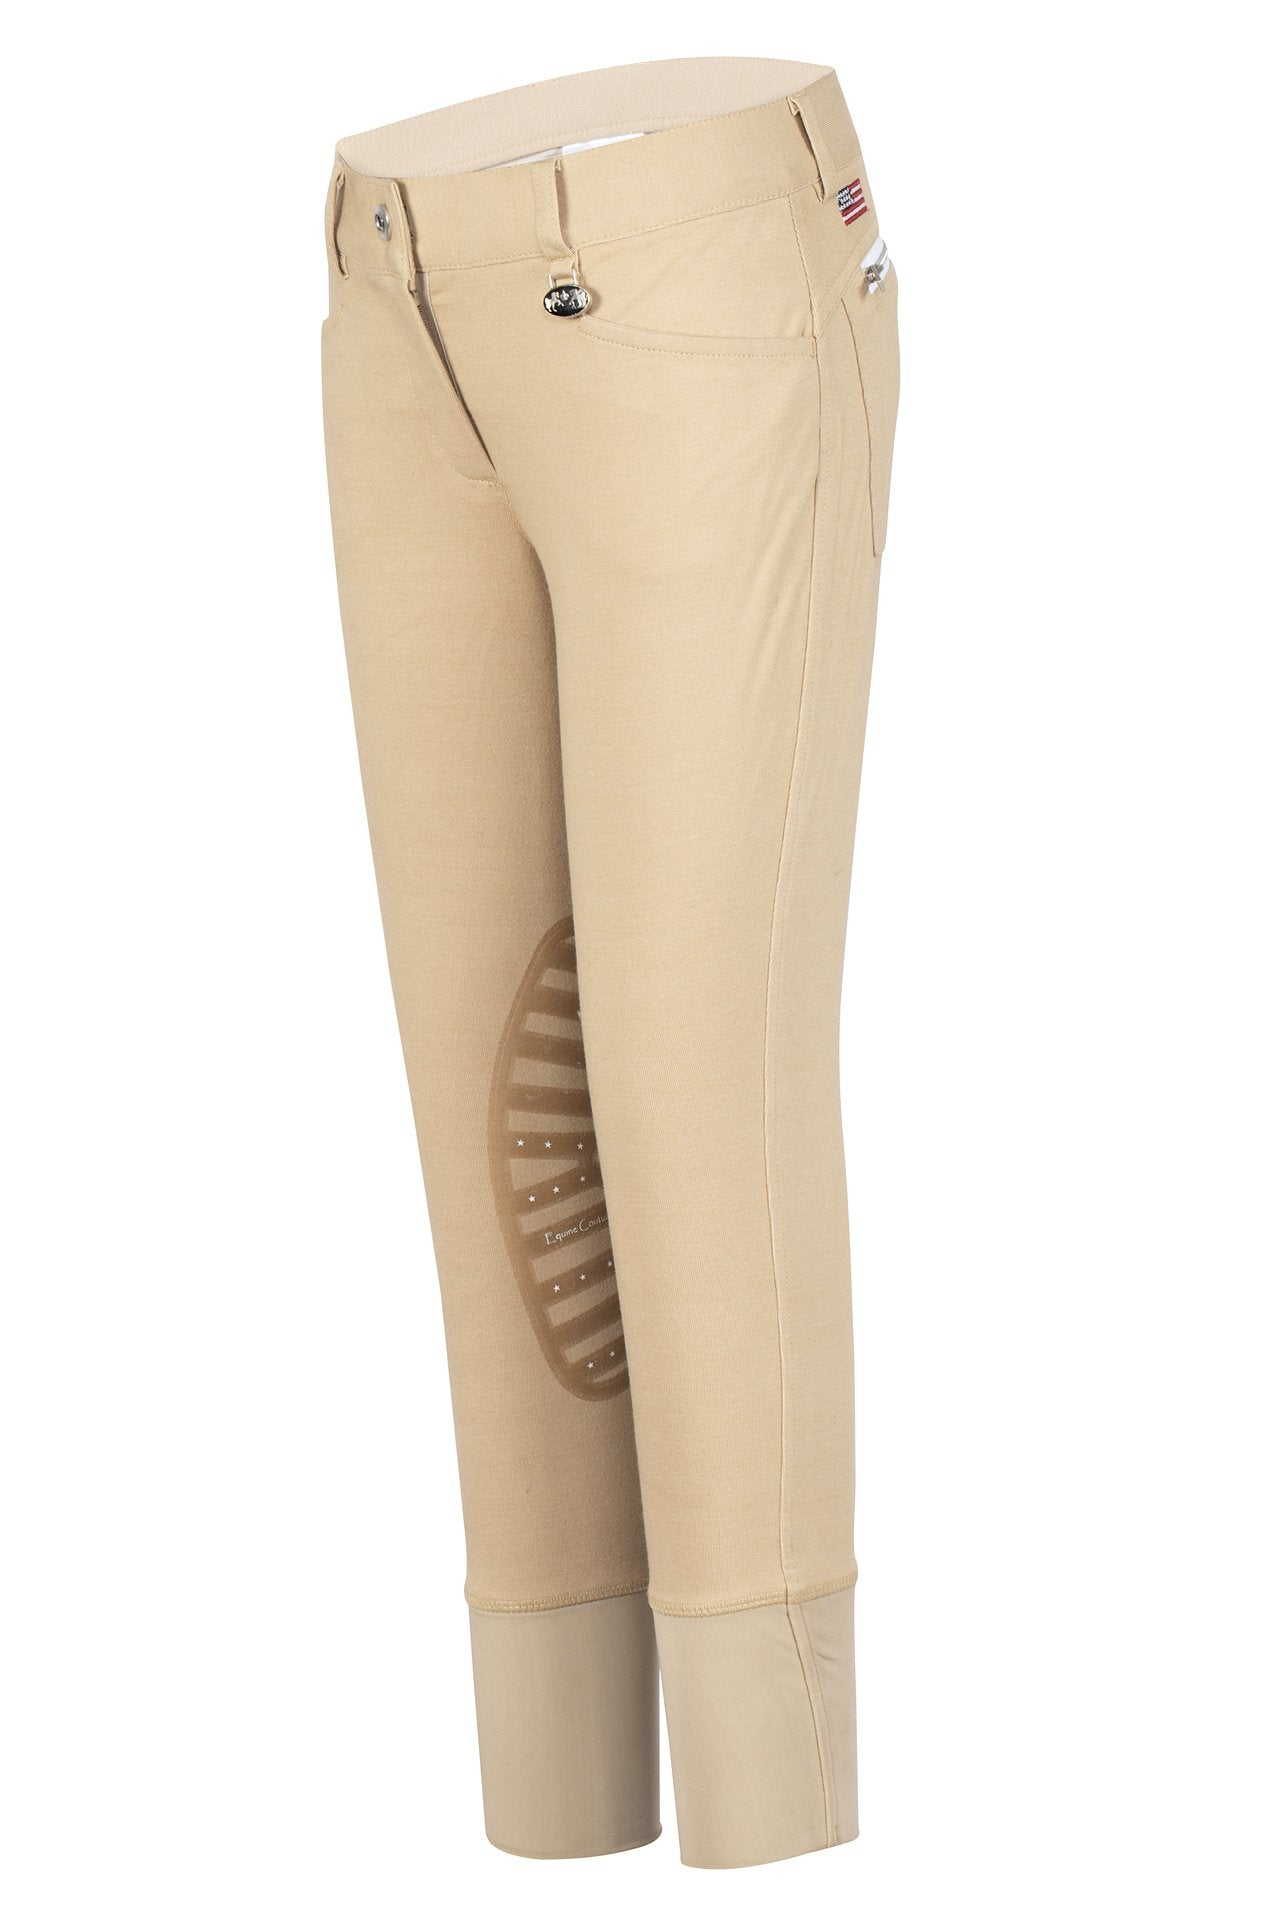 Children's All Star Knee Patch Breeches - Equine Couture - Breeches.com